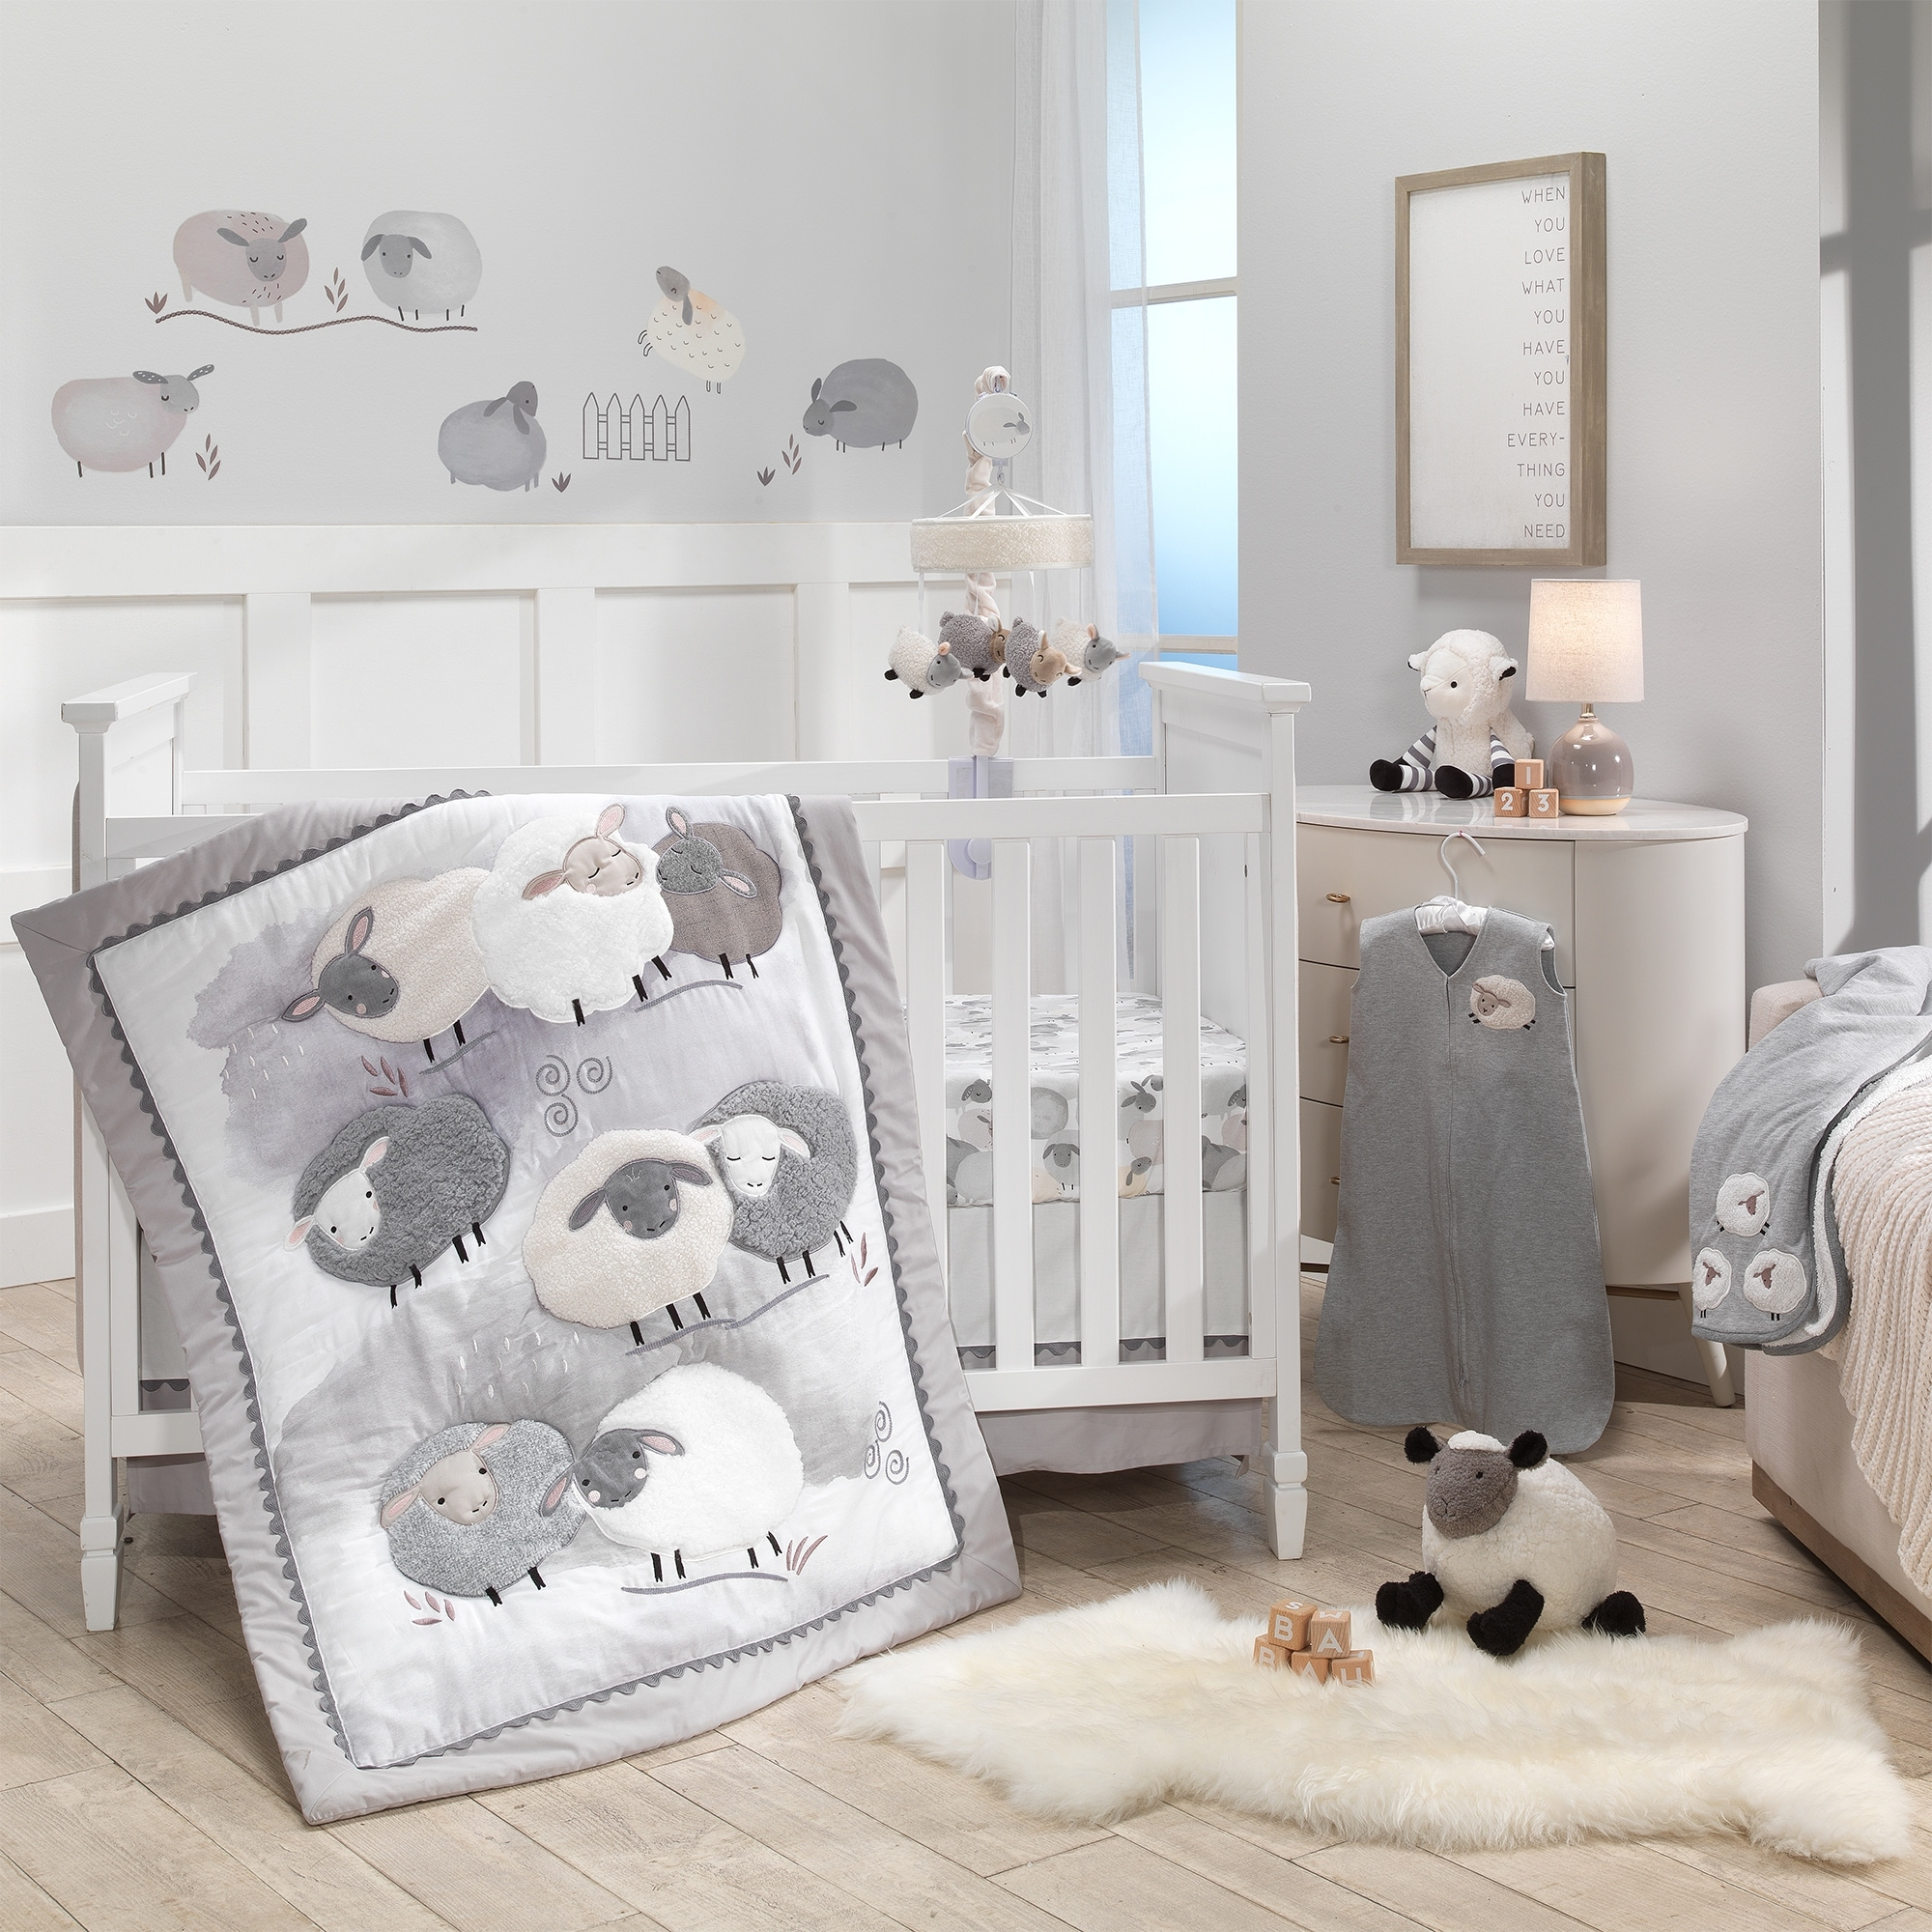 Lambs Ivy Sleepy Sheep 5 Piece Gray White Watercolor Baby Crib Bedding Set Overstock 30714458